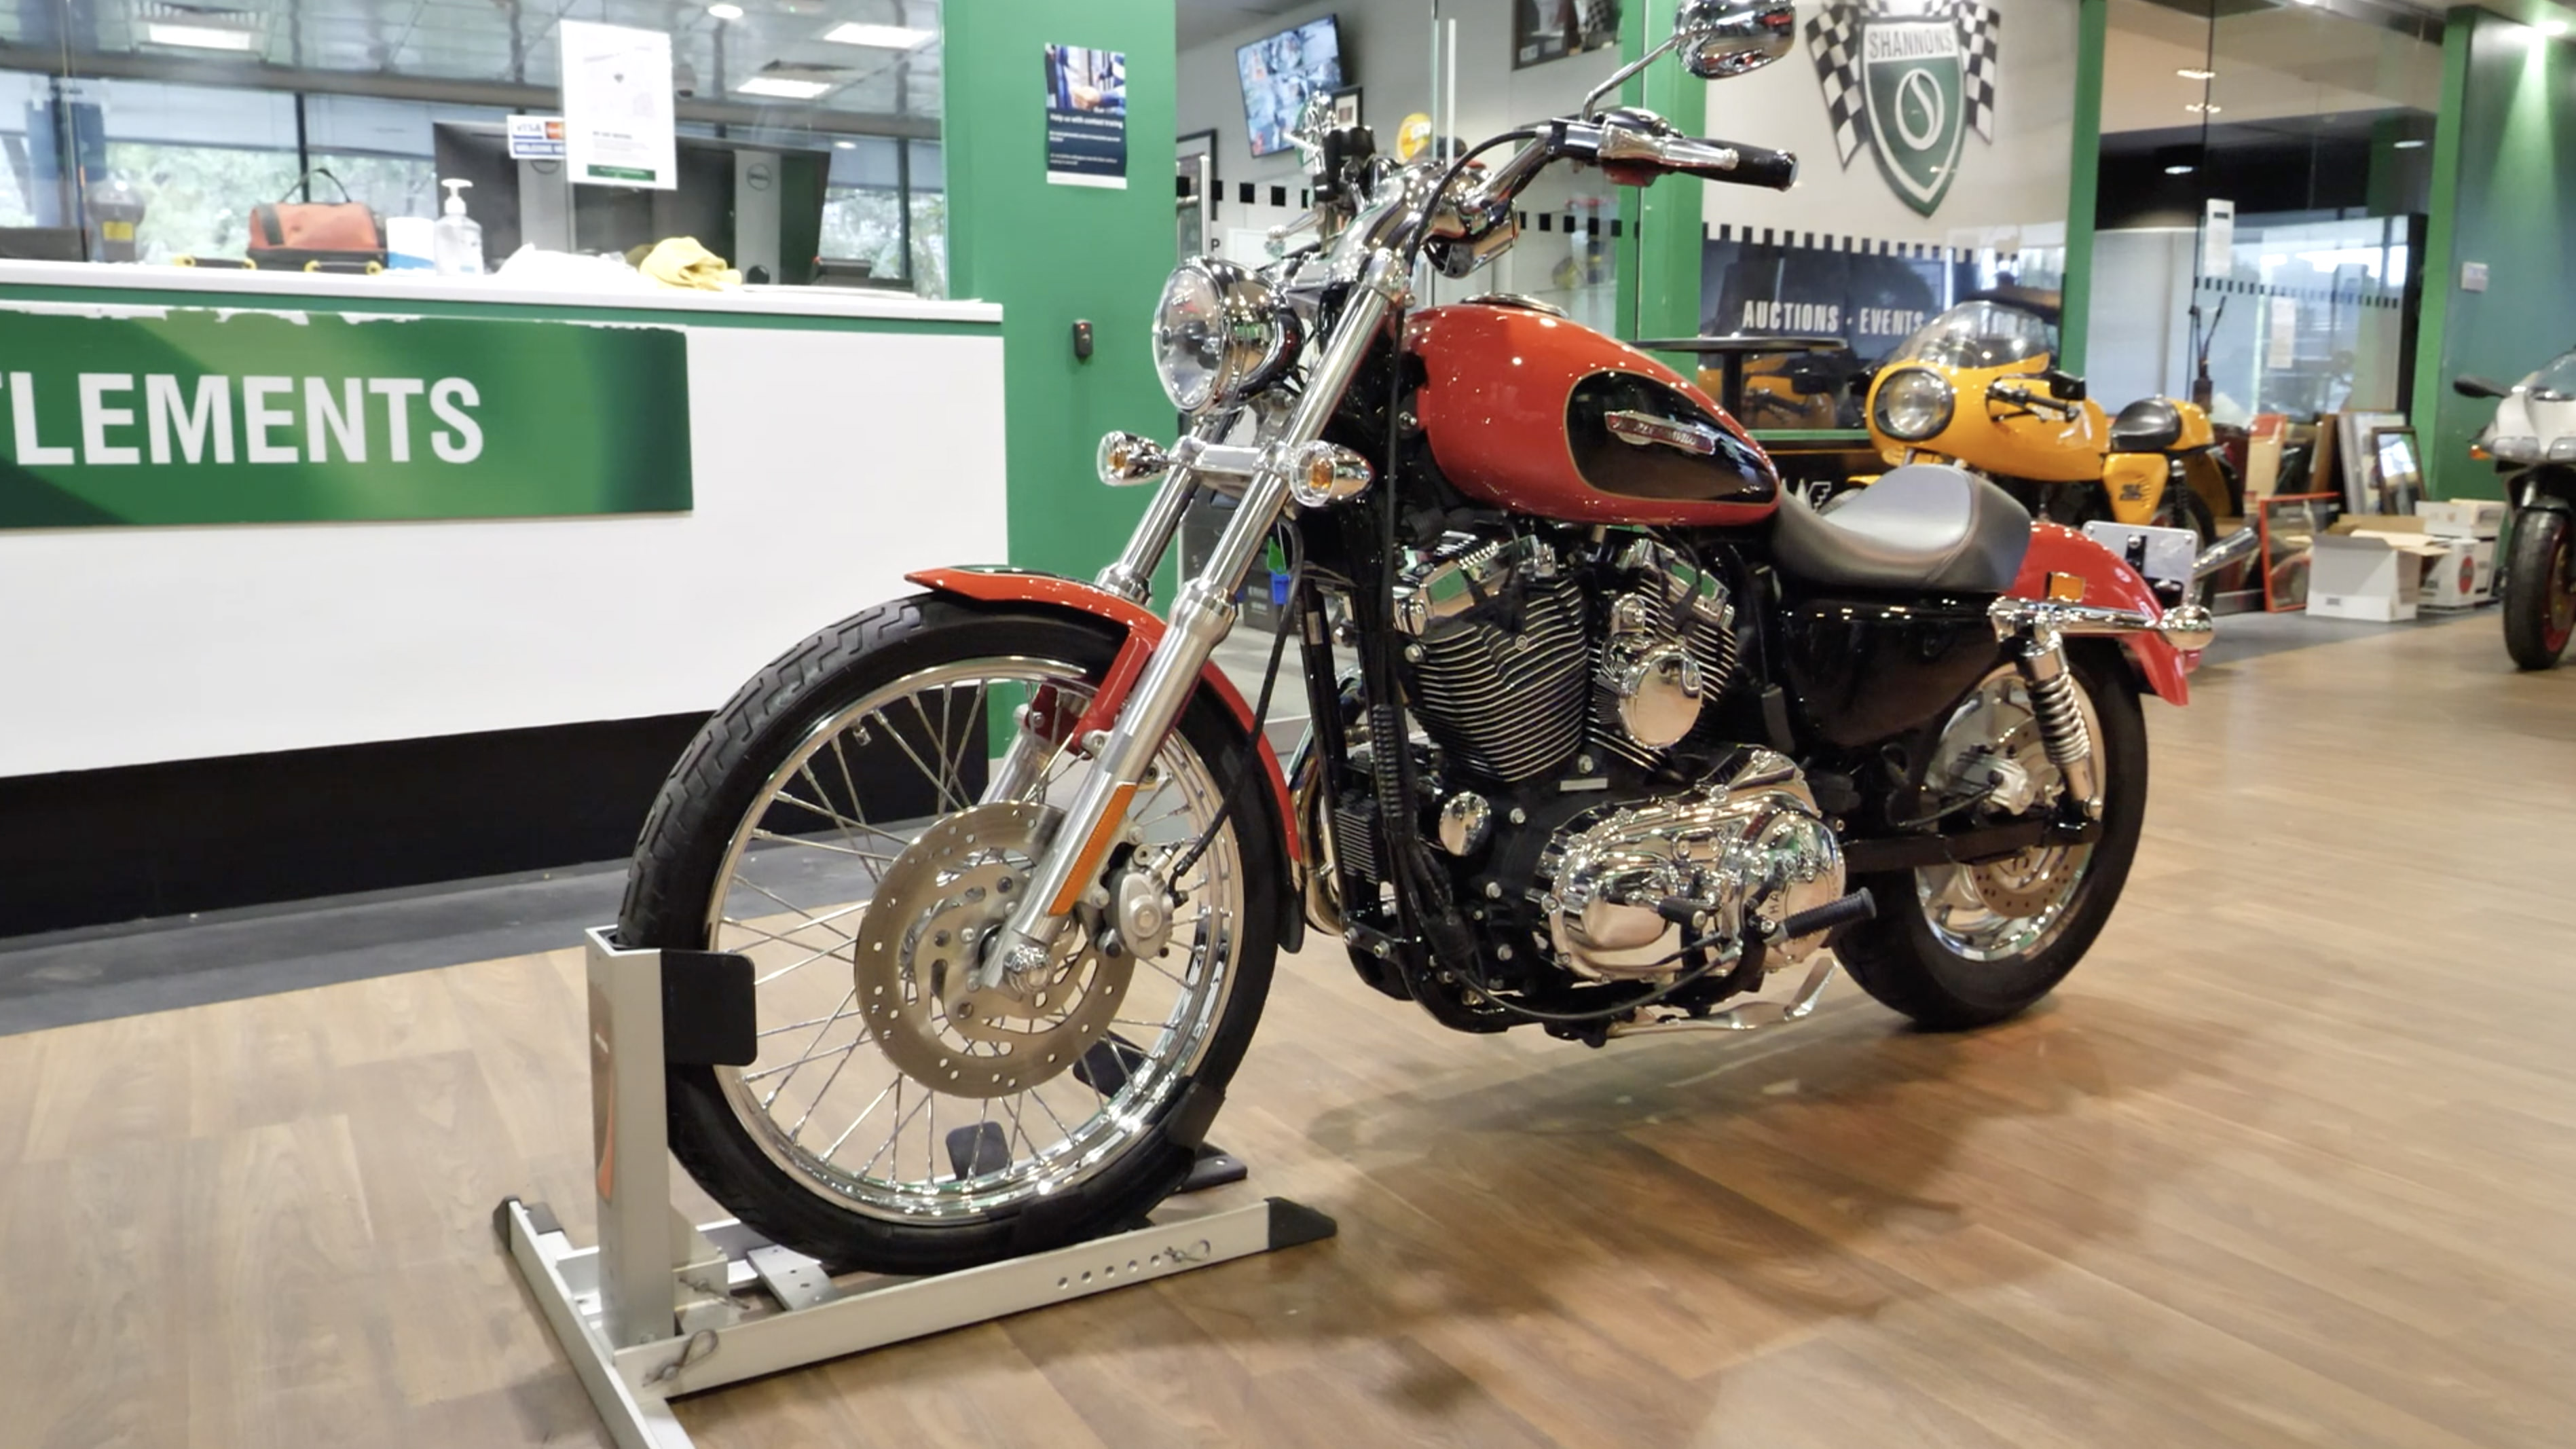 2010 Harley-Davidson Sportster XL1200C Motorcycle - 2020 Shannons Spring Timed Online Auction